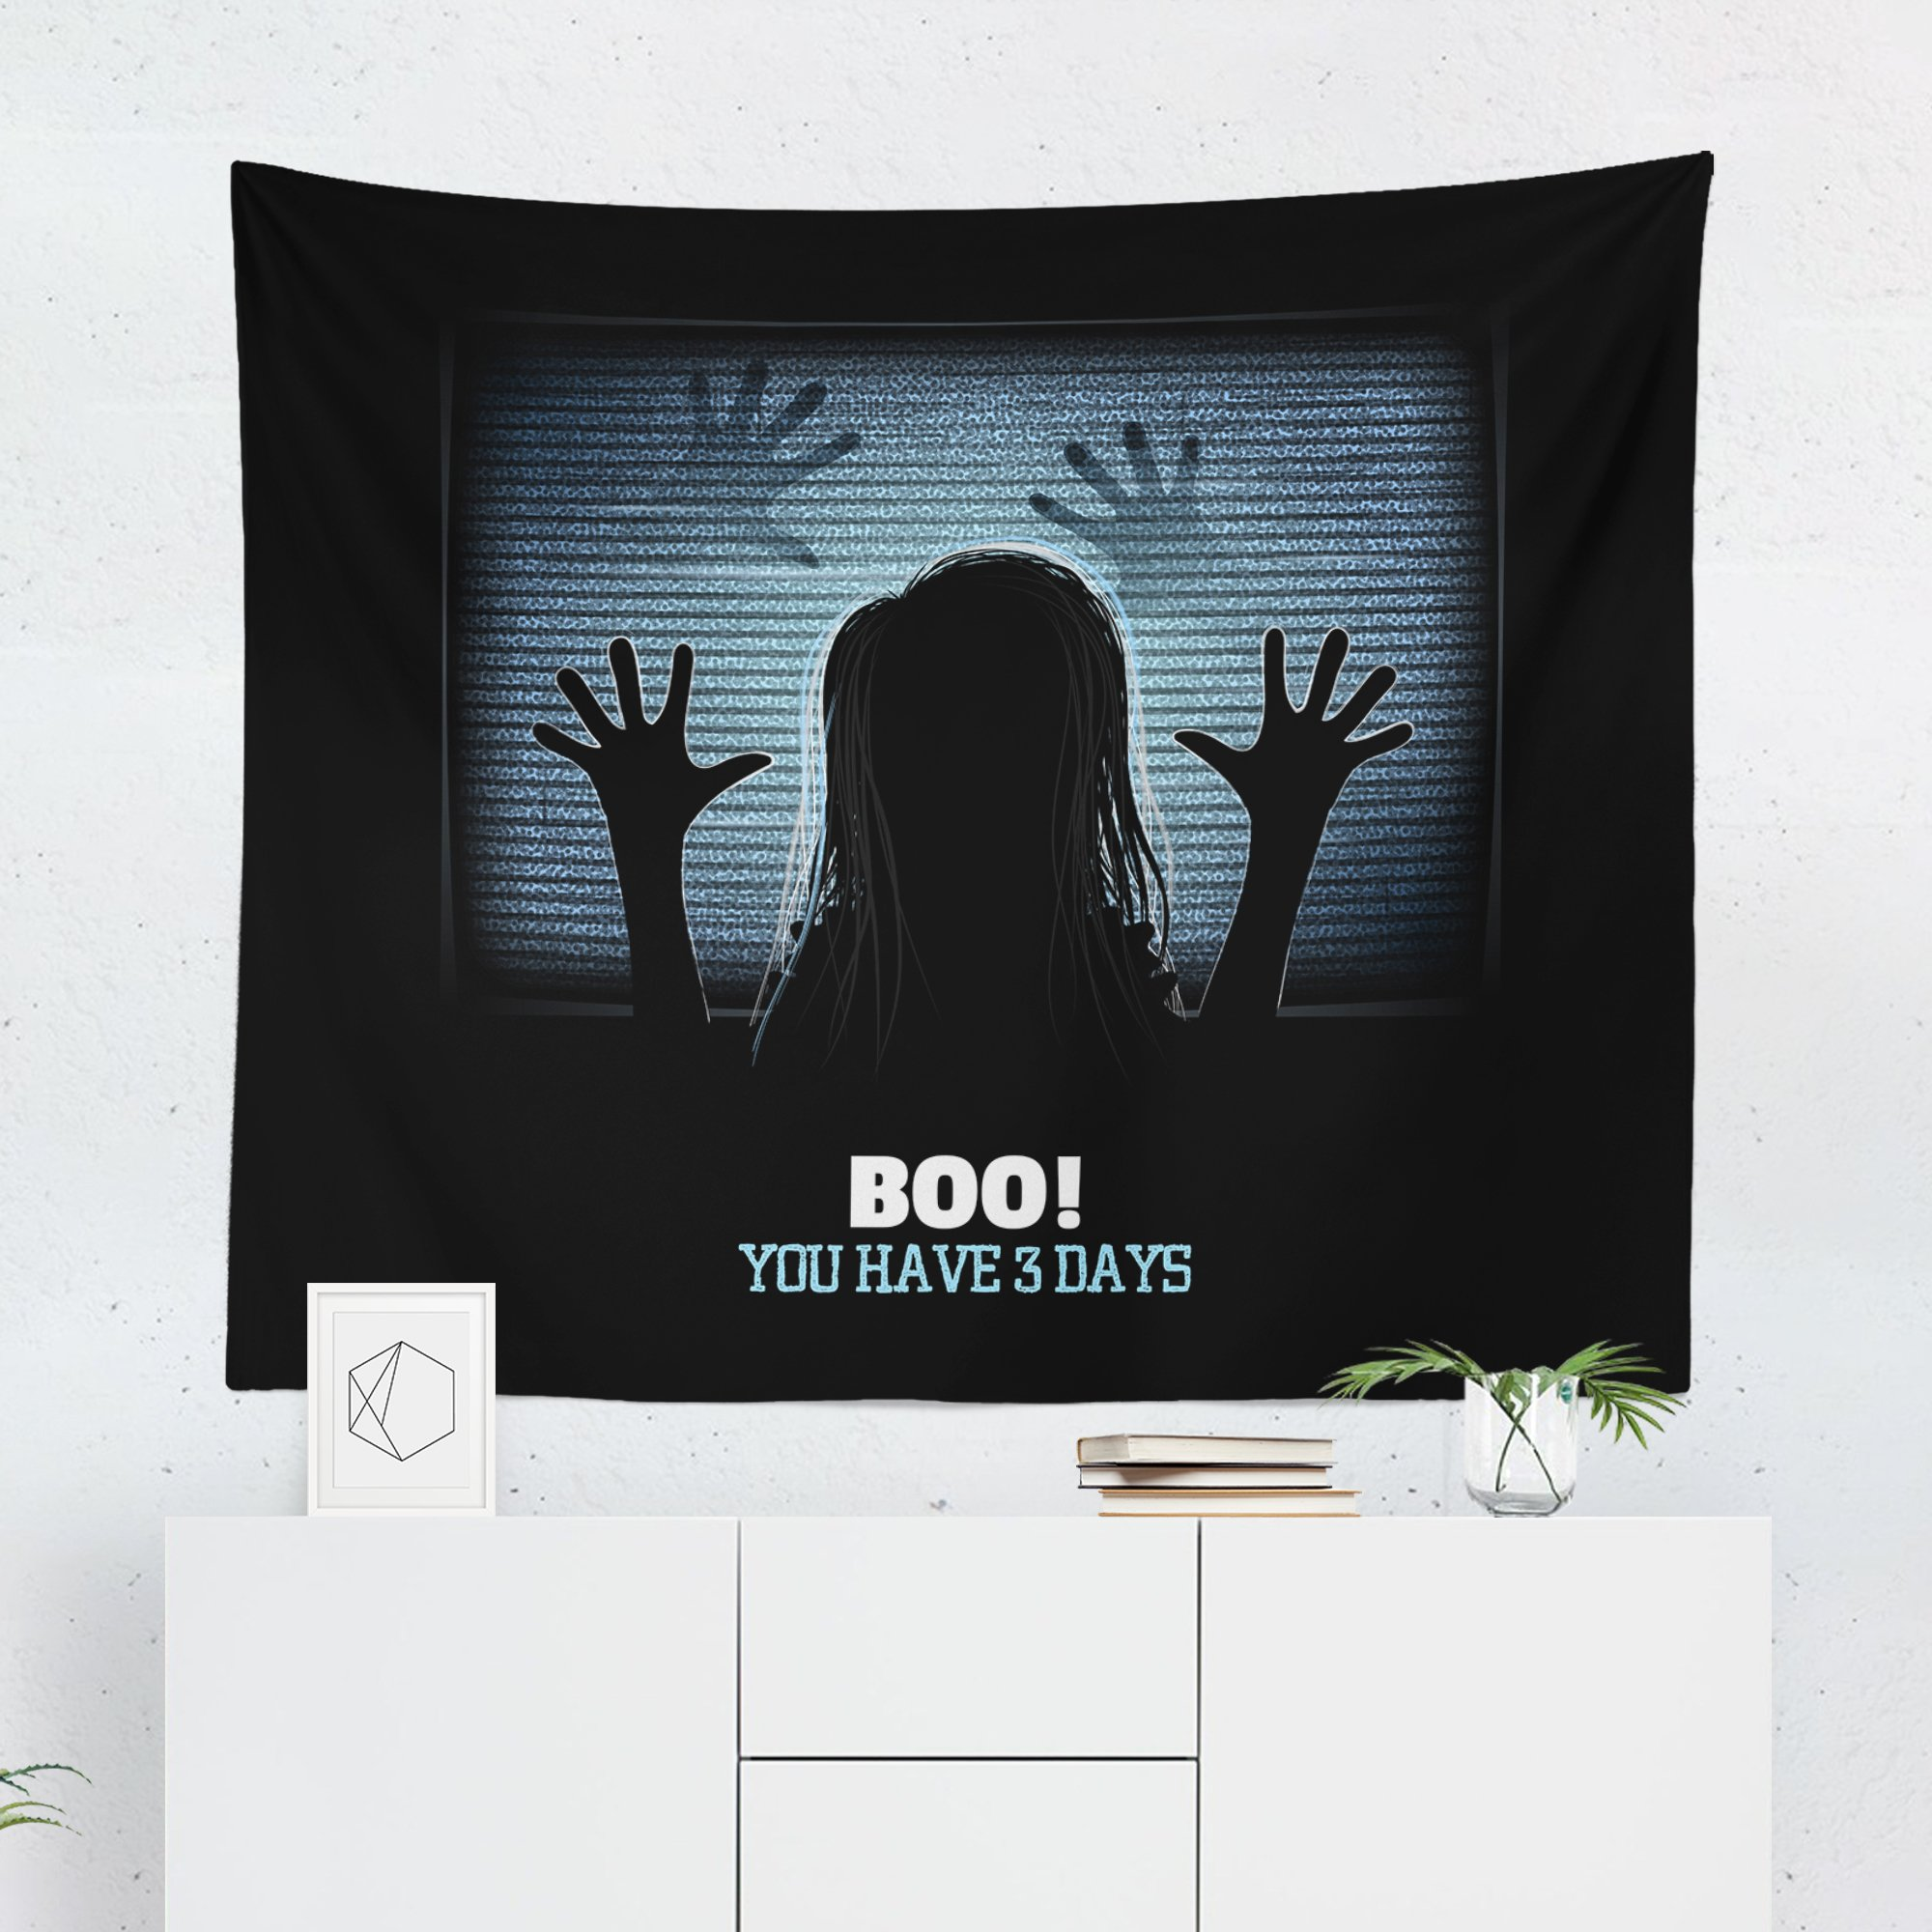 Funny Halloween Tapestry - Spooky Horror Movie Creepy Scary Wall Tapestries Hanging Décor Bedroom Dorm College Living Room Home Art Print Decoration Decorative - Printed in the USA